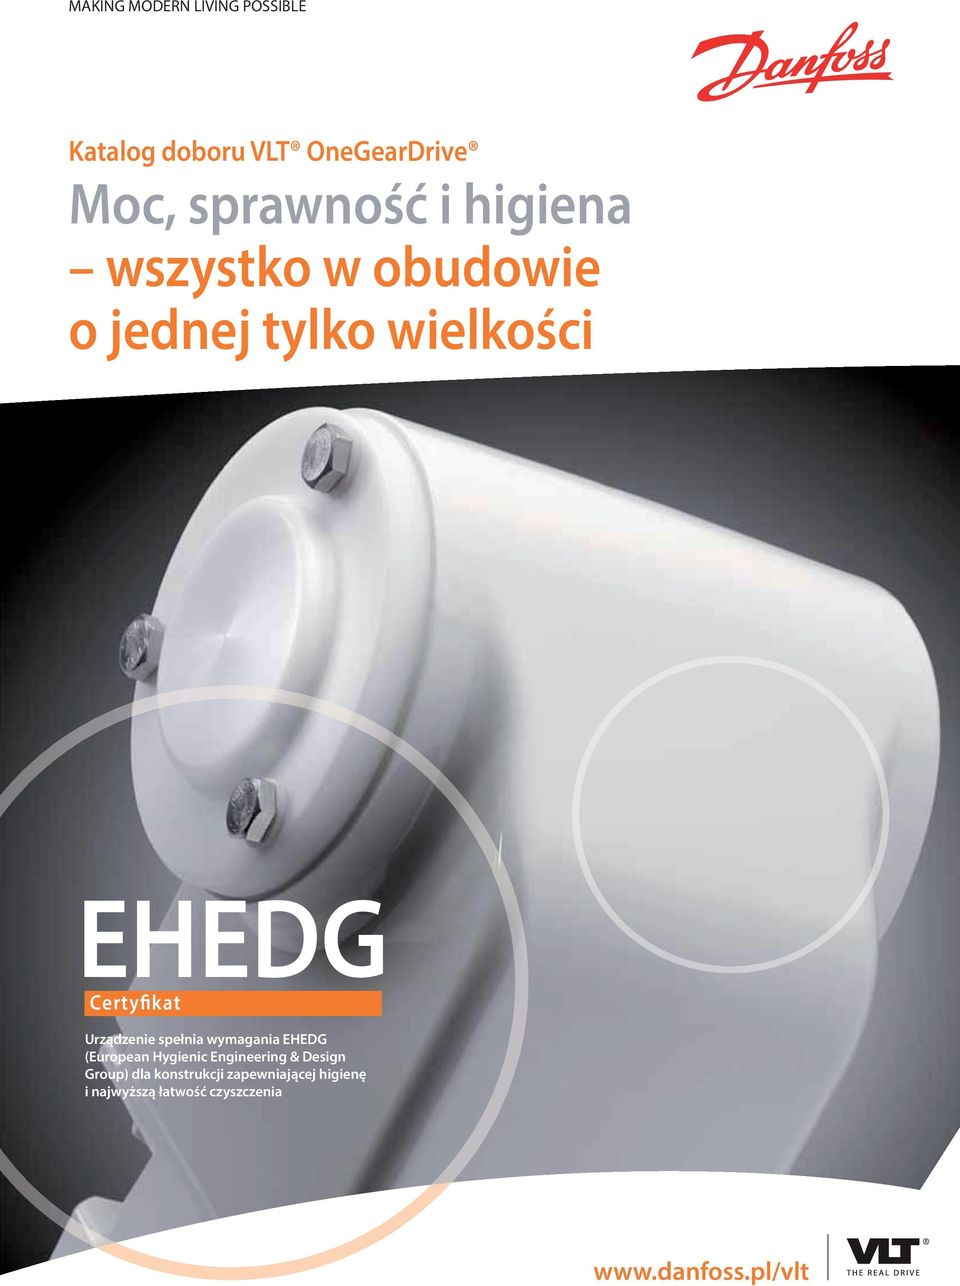 spełnia wymagania EHEDG (European Hygienic Engineering & Design Group) dla